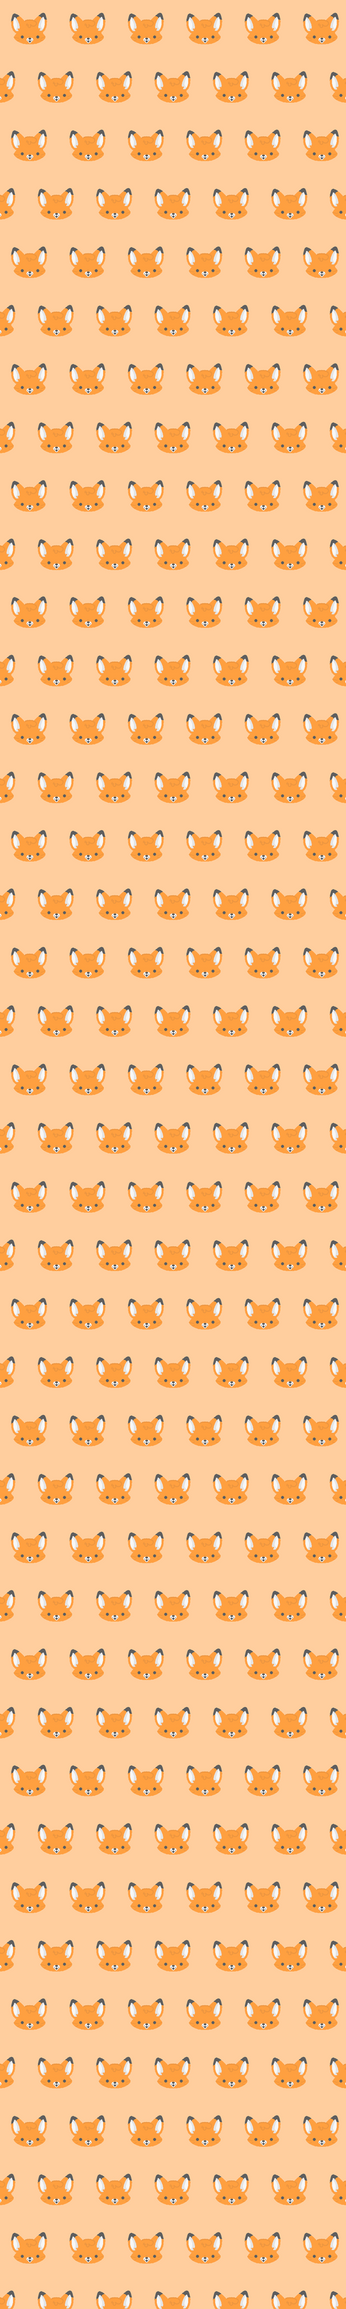 Orange Fox Custom Box BG by FuwaFuwaPuppy